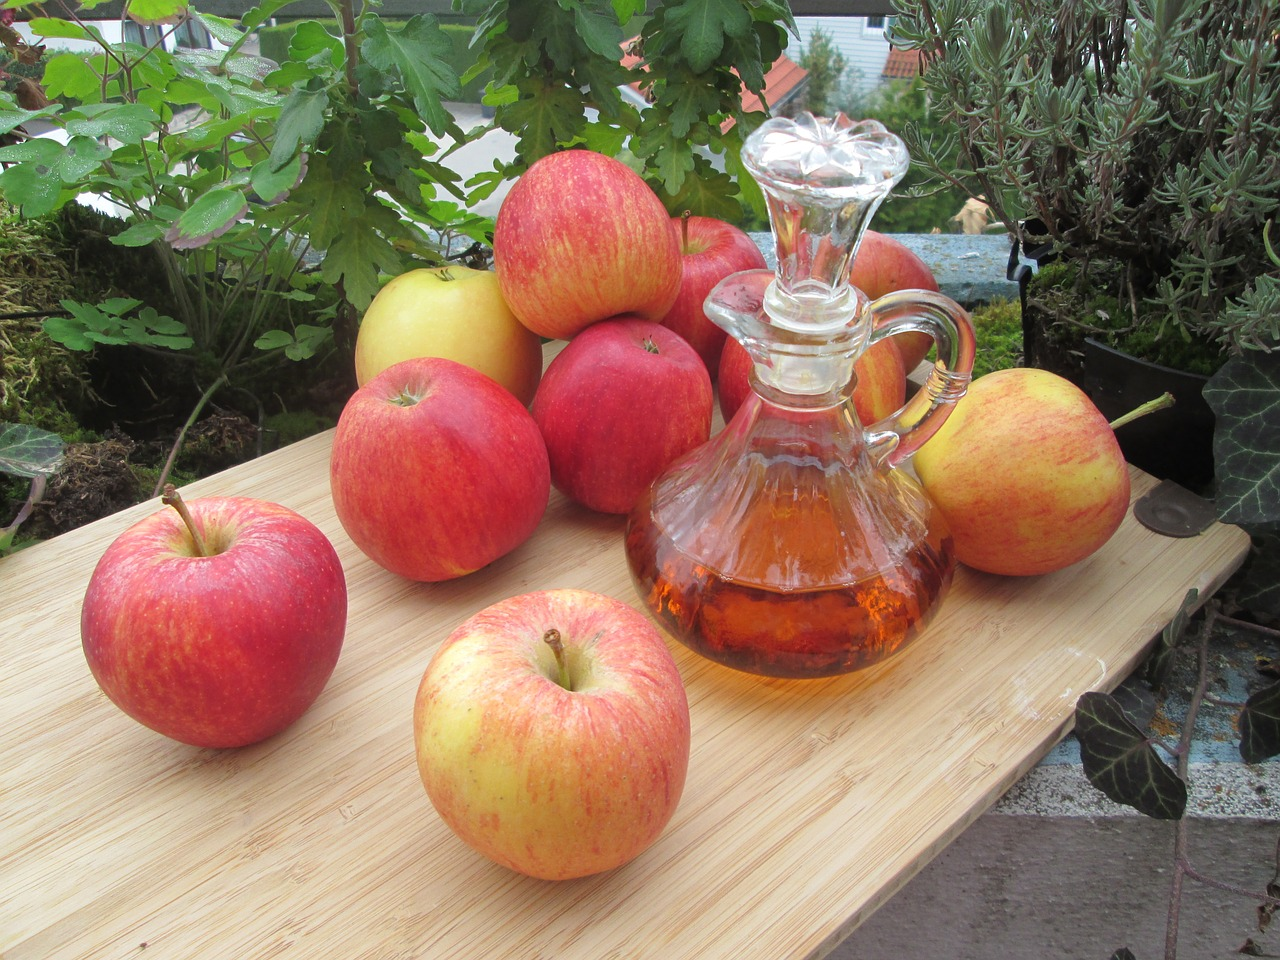 Apple Cider Vinegar Remedies: Do They Work?